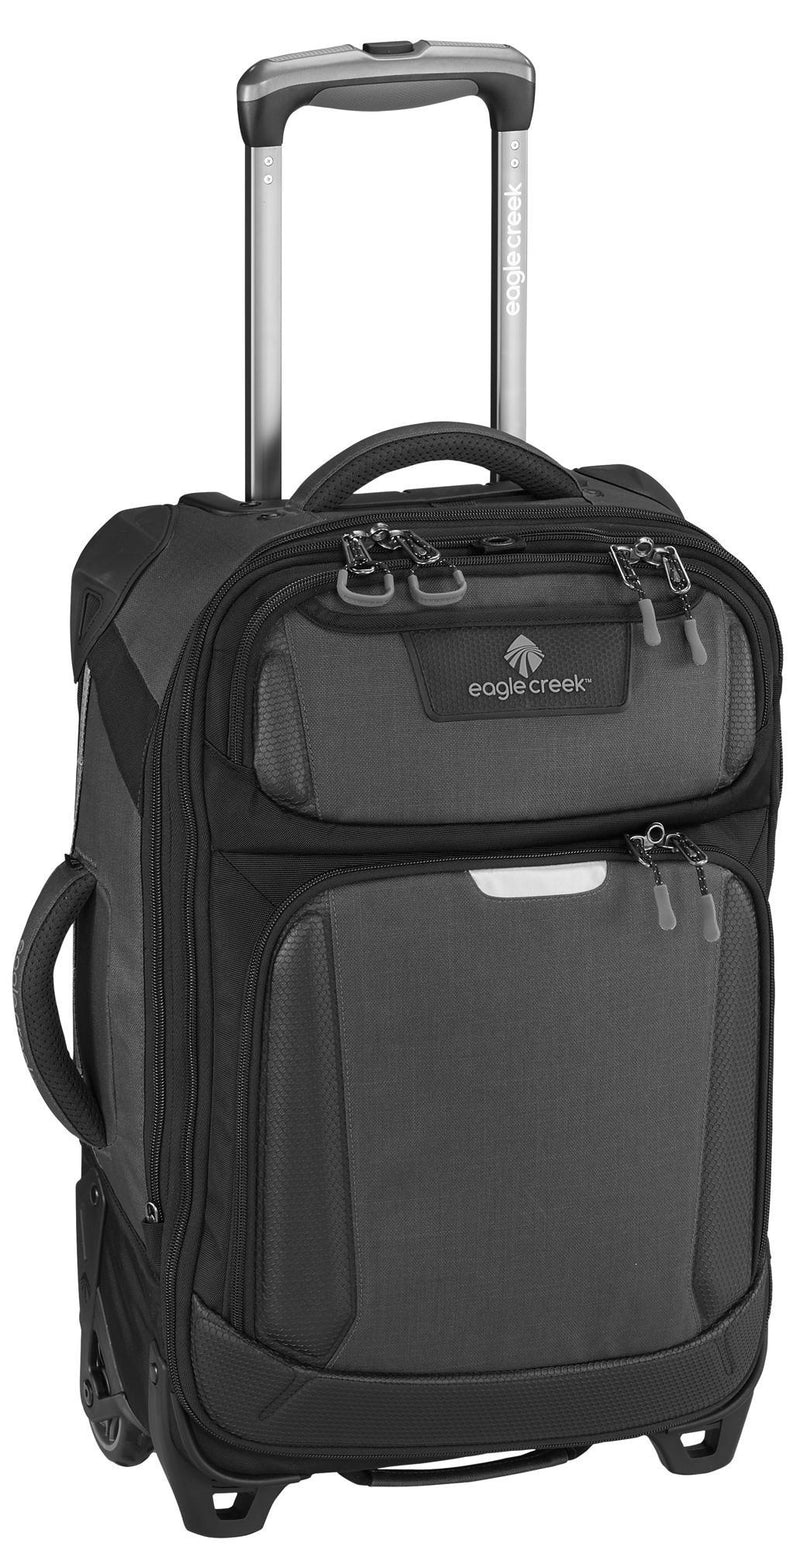 Eagle Creek Exploration Series Tarmac Carry-On-Luggage Pros